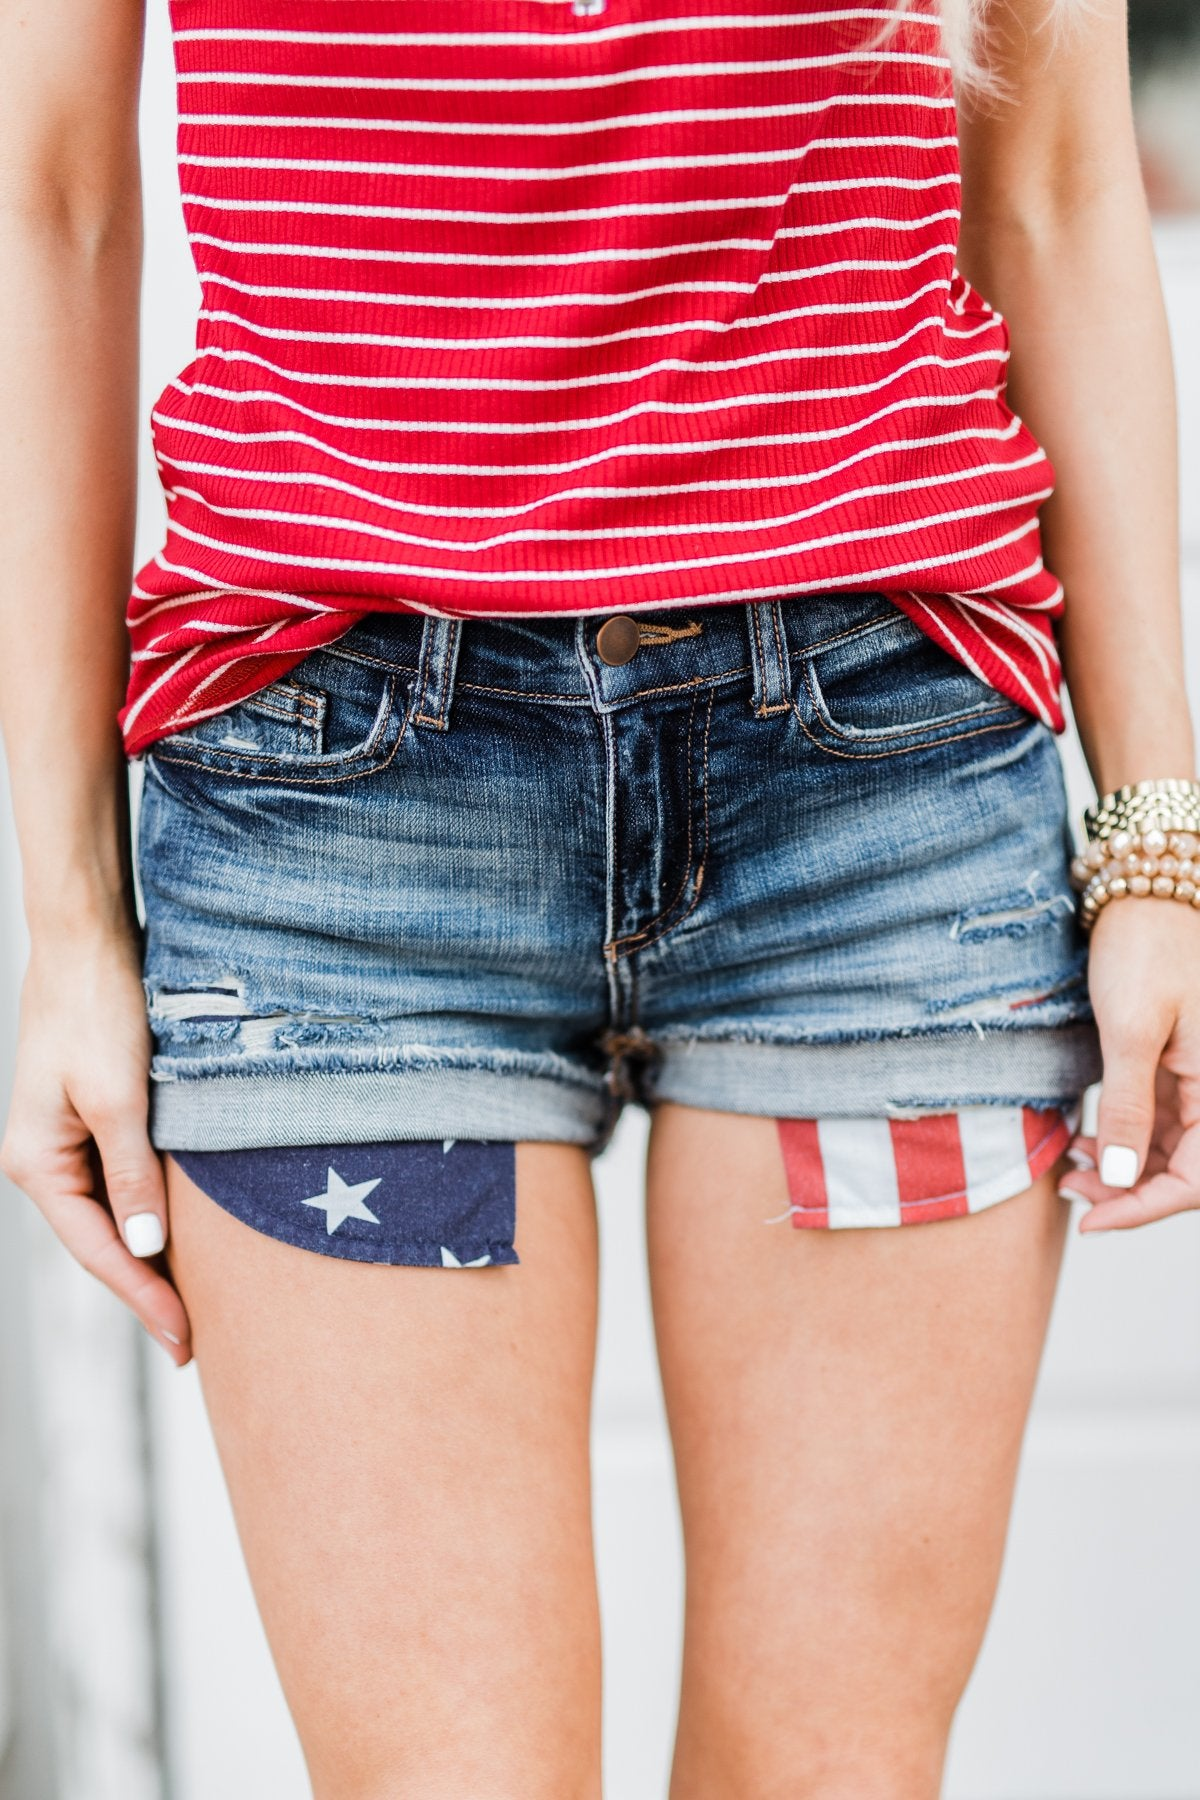 Sneak Peek Flag Pocket Shorts- Medium Wash